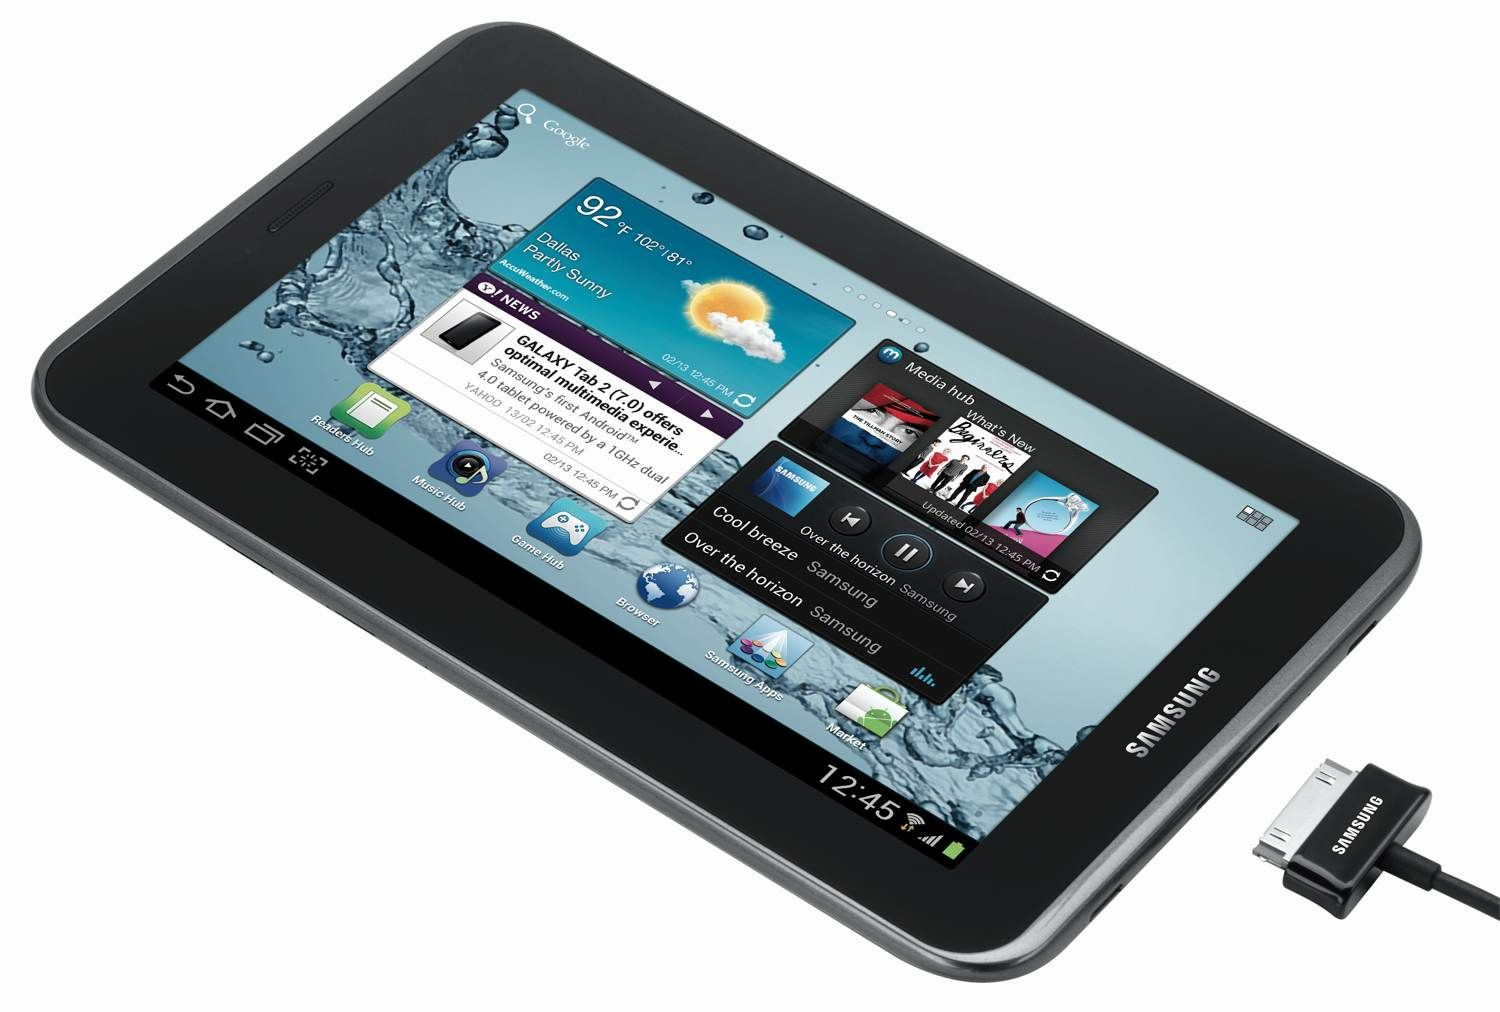 samsung galaxy tab 2 7 0 galaxy y on offer for 15 50 per month rh itproportal com LG Cell Phone Manuals LG Apex Phone